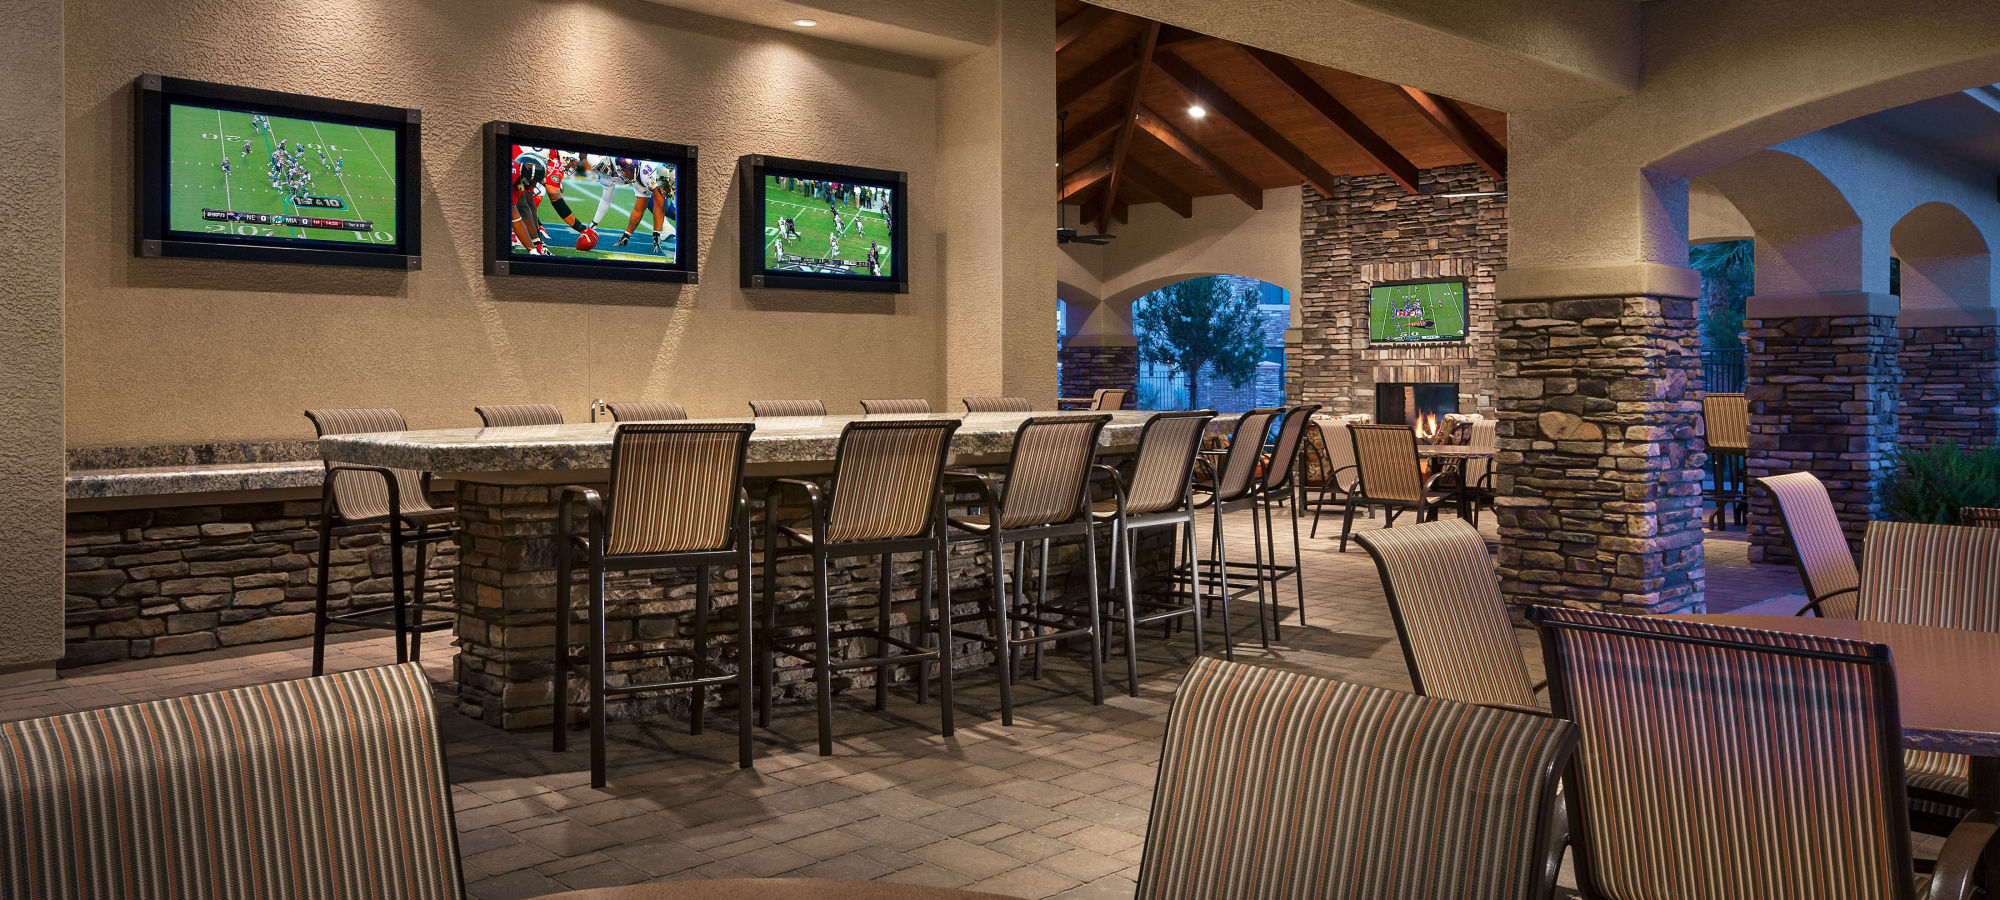 Sports bar and community area at San Travesia in Scottsdale, Arizona